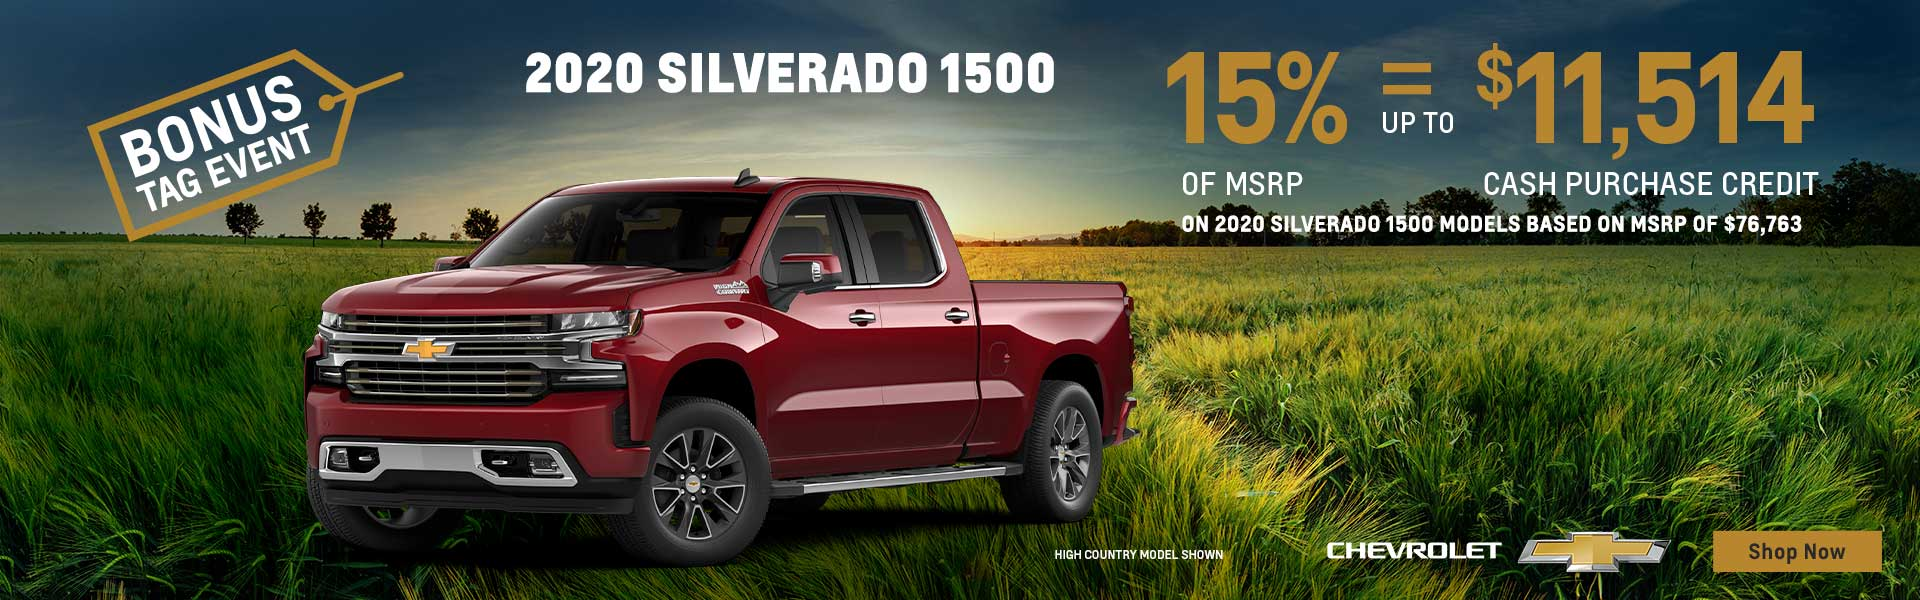 Bonus Tag Event on Chevrolet Silverado 1500